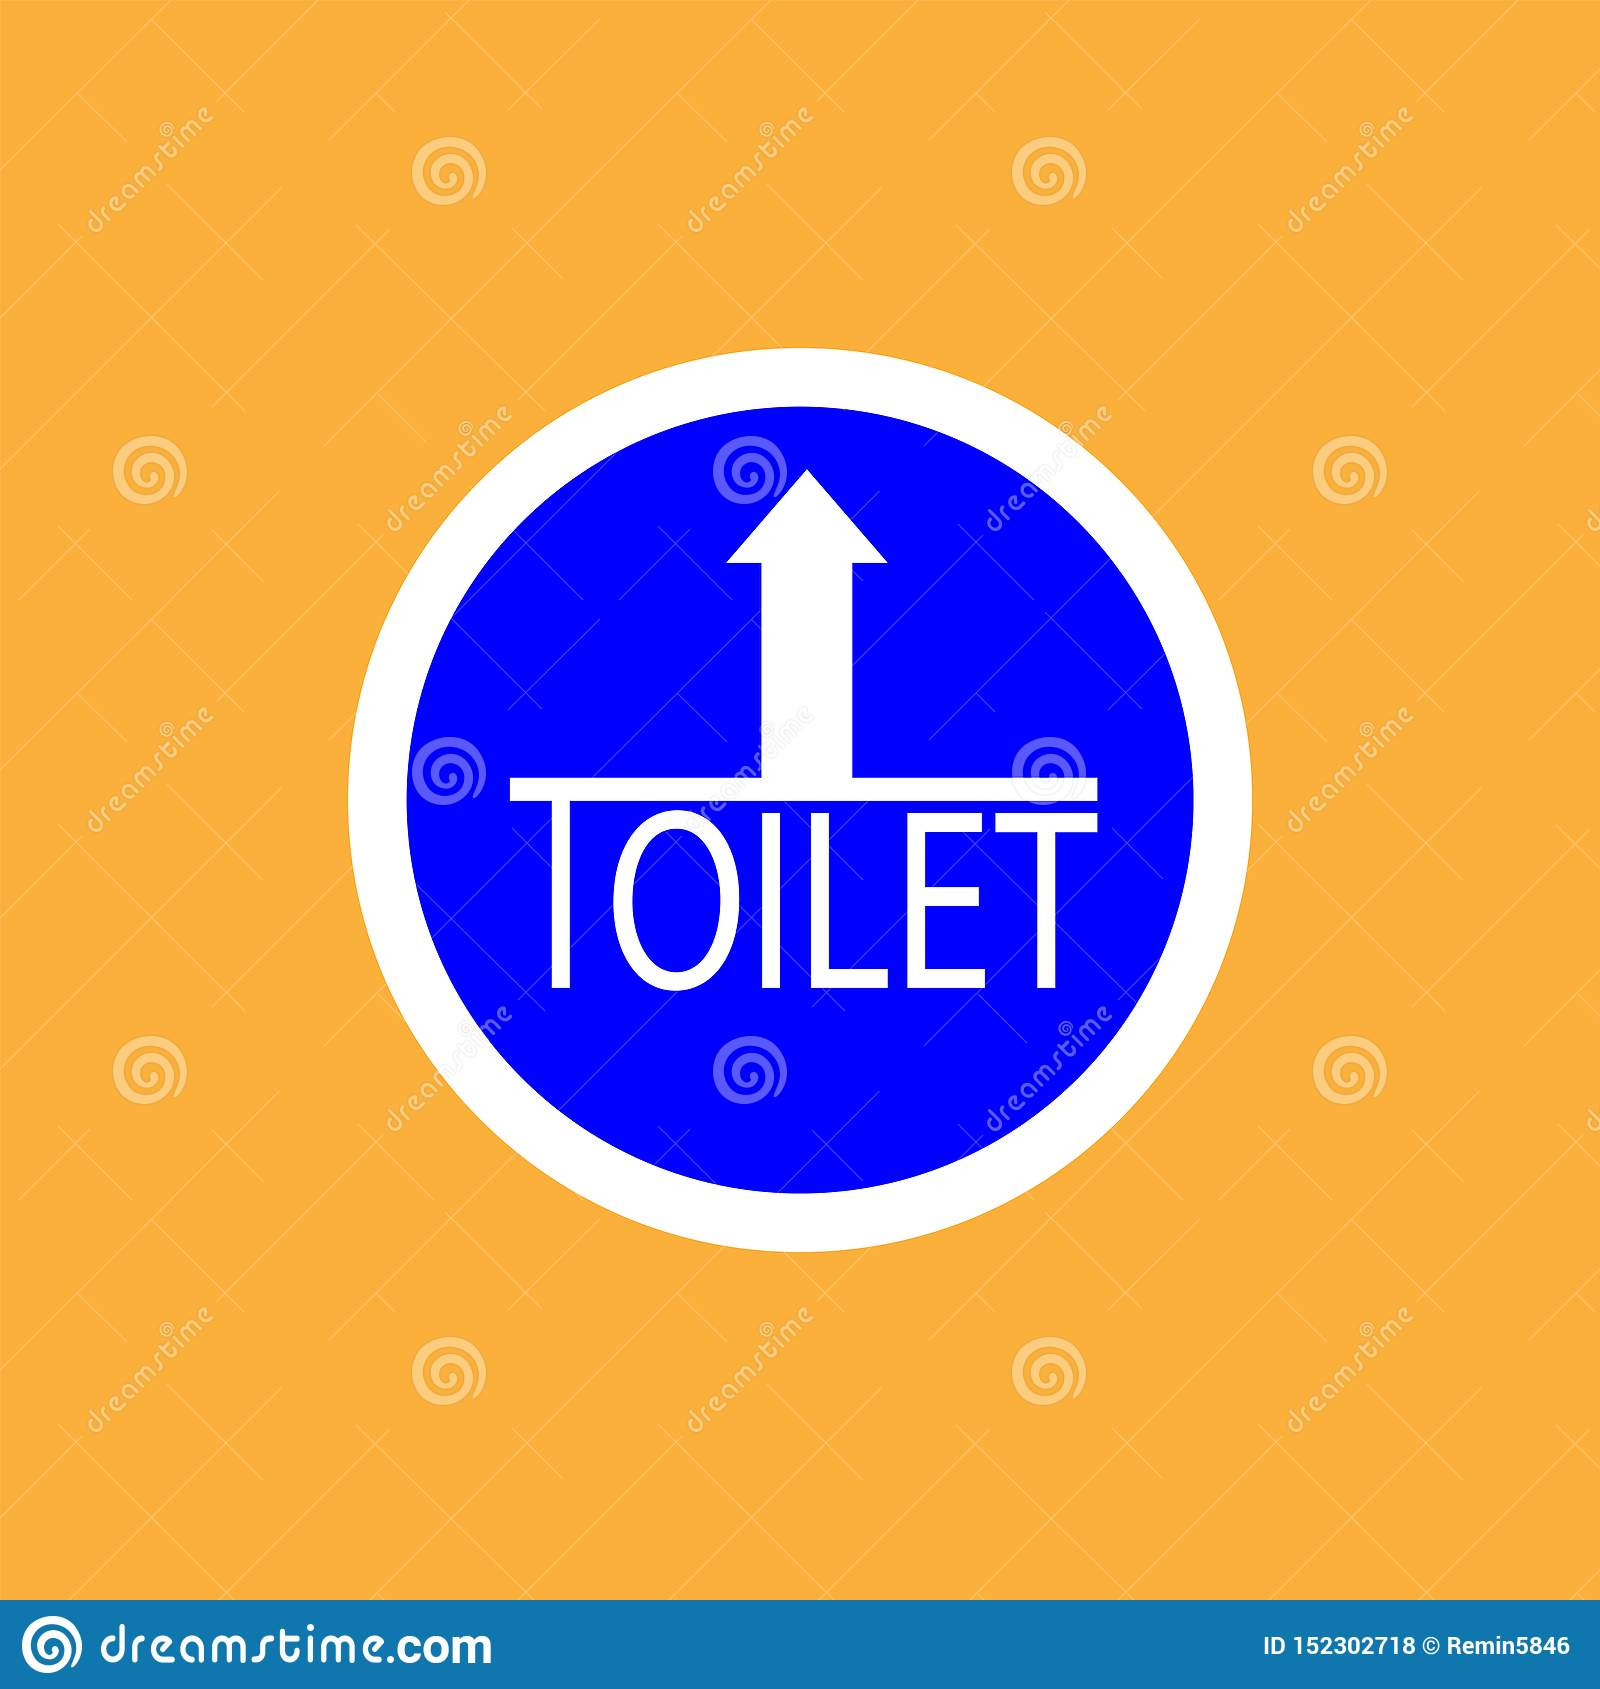 WCtoilet round icon with arrow, white thin line on blue background - vector illustration